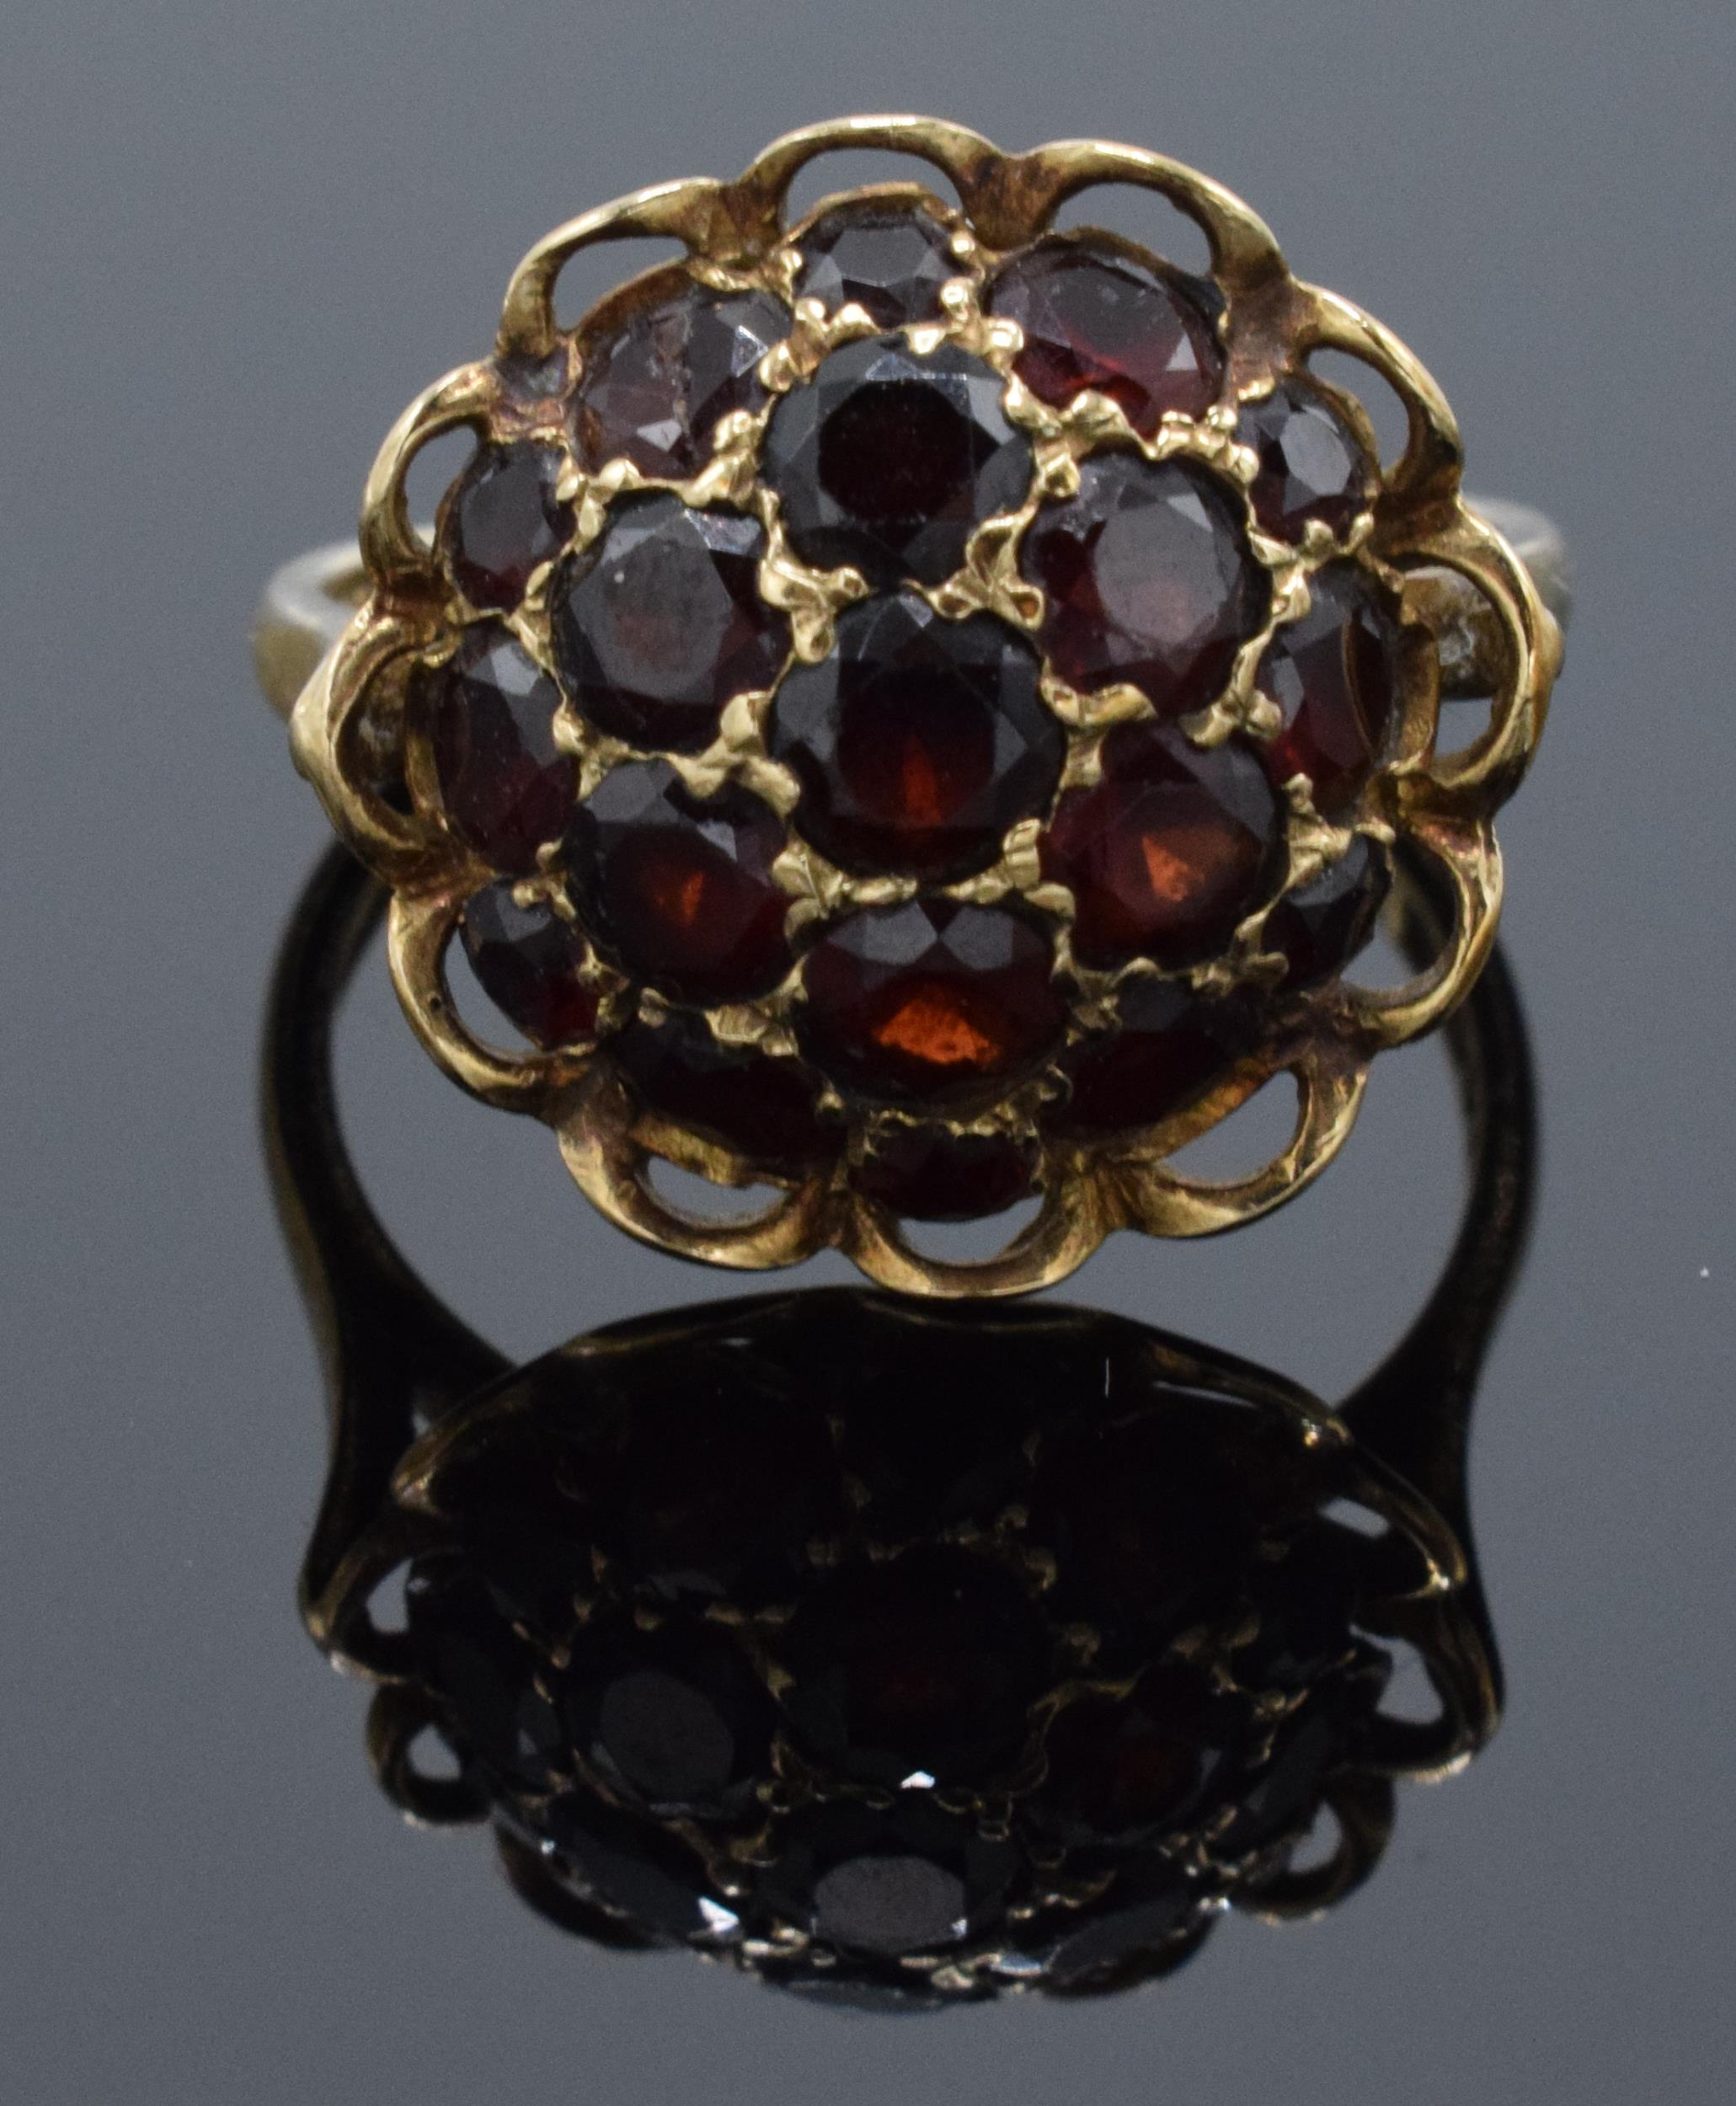 A 9ct gold dress ring set with garnet stones. 3.6 grams.